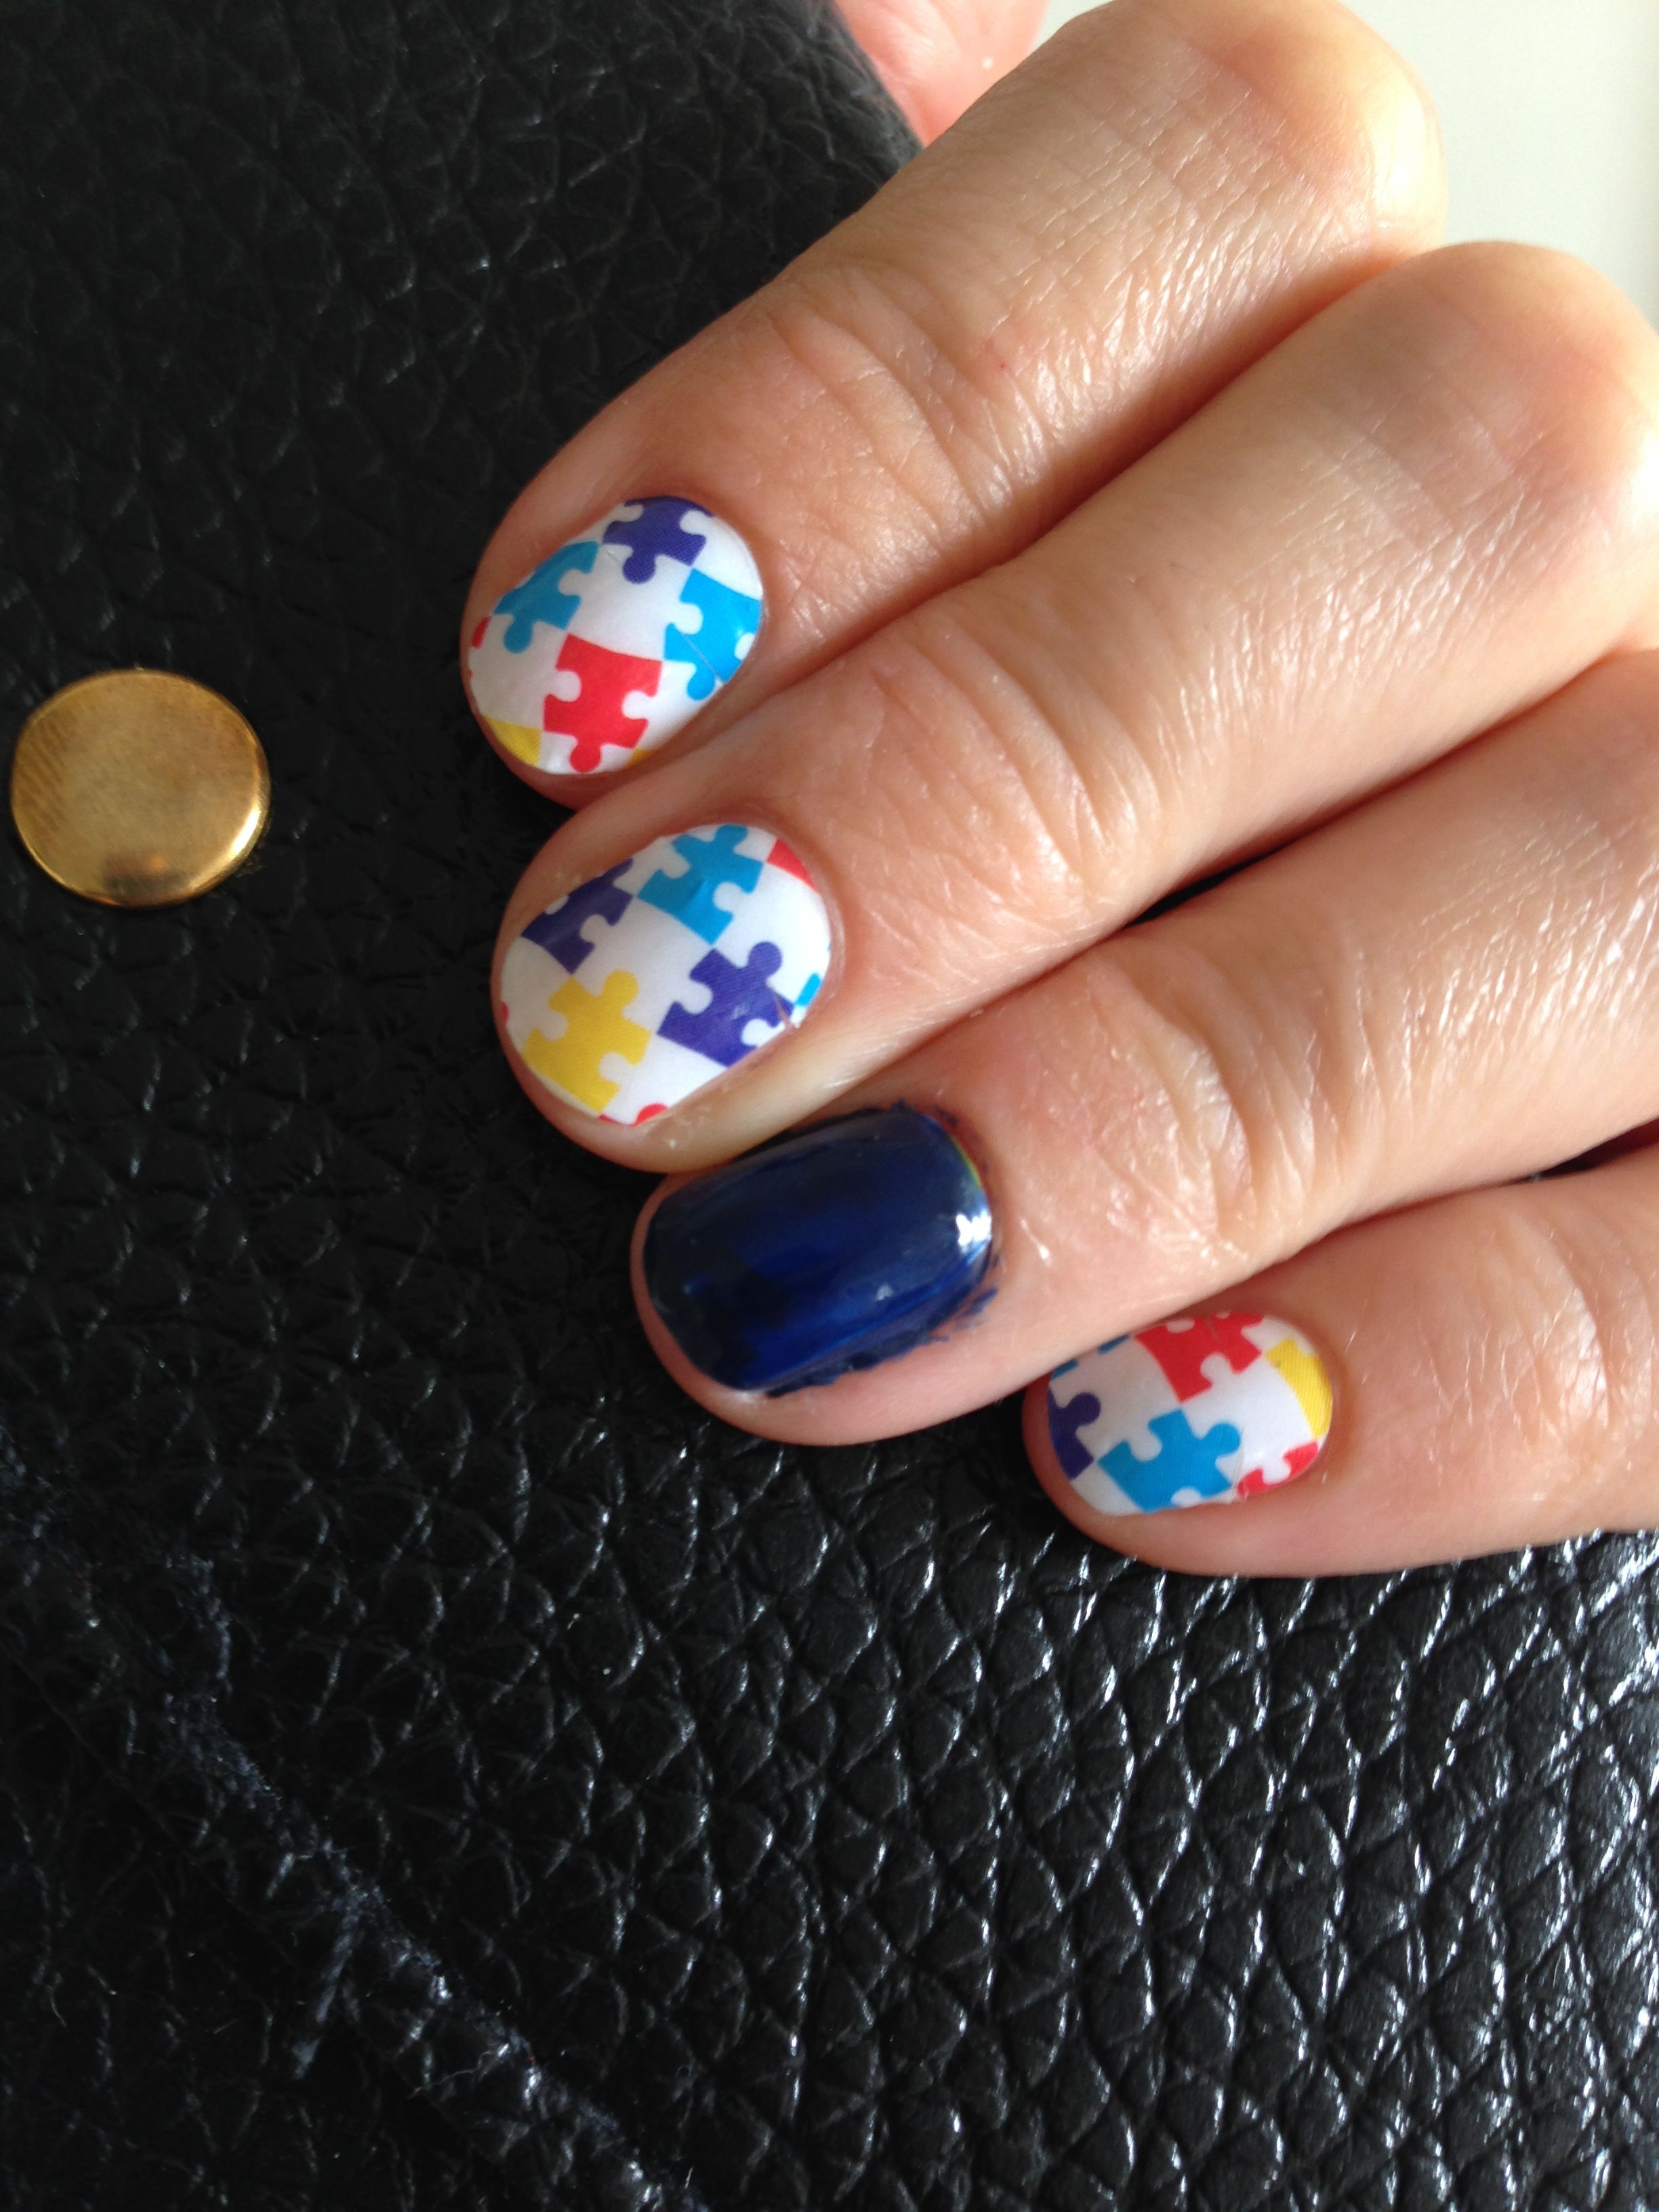 About baby boomer nail art tutorial by nded on pinterest nail art - Jamberry